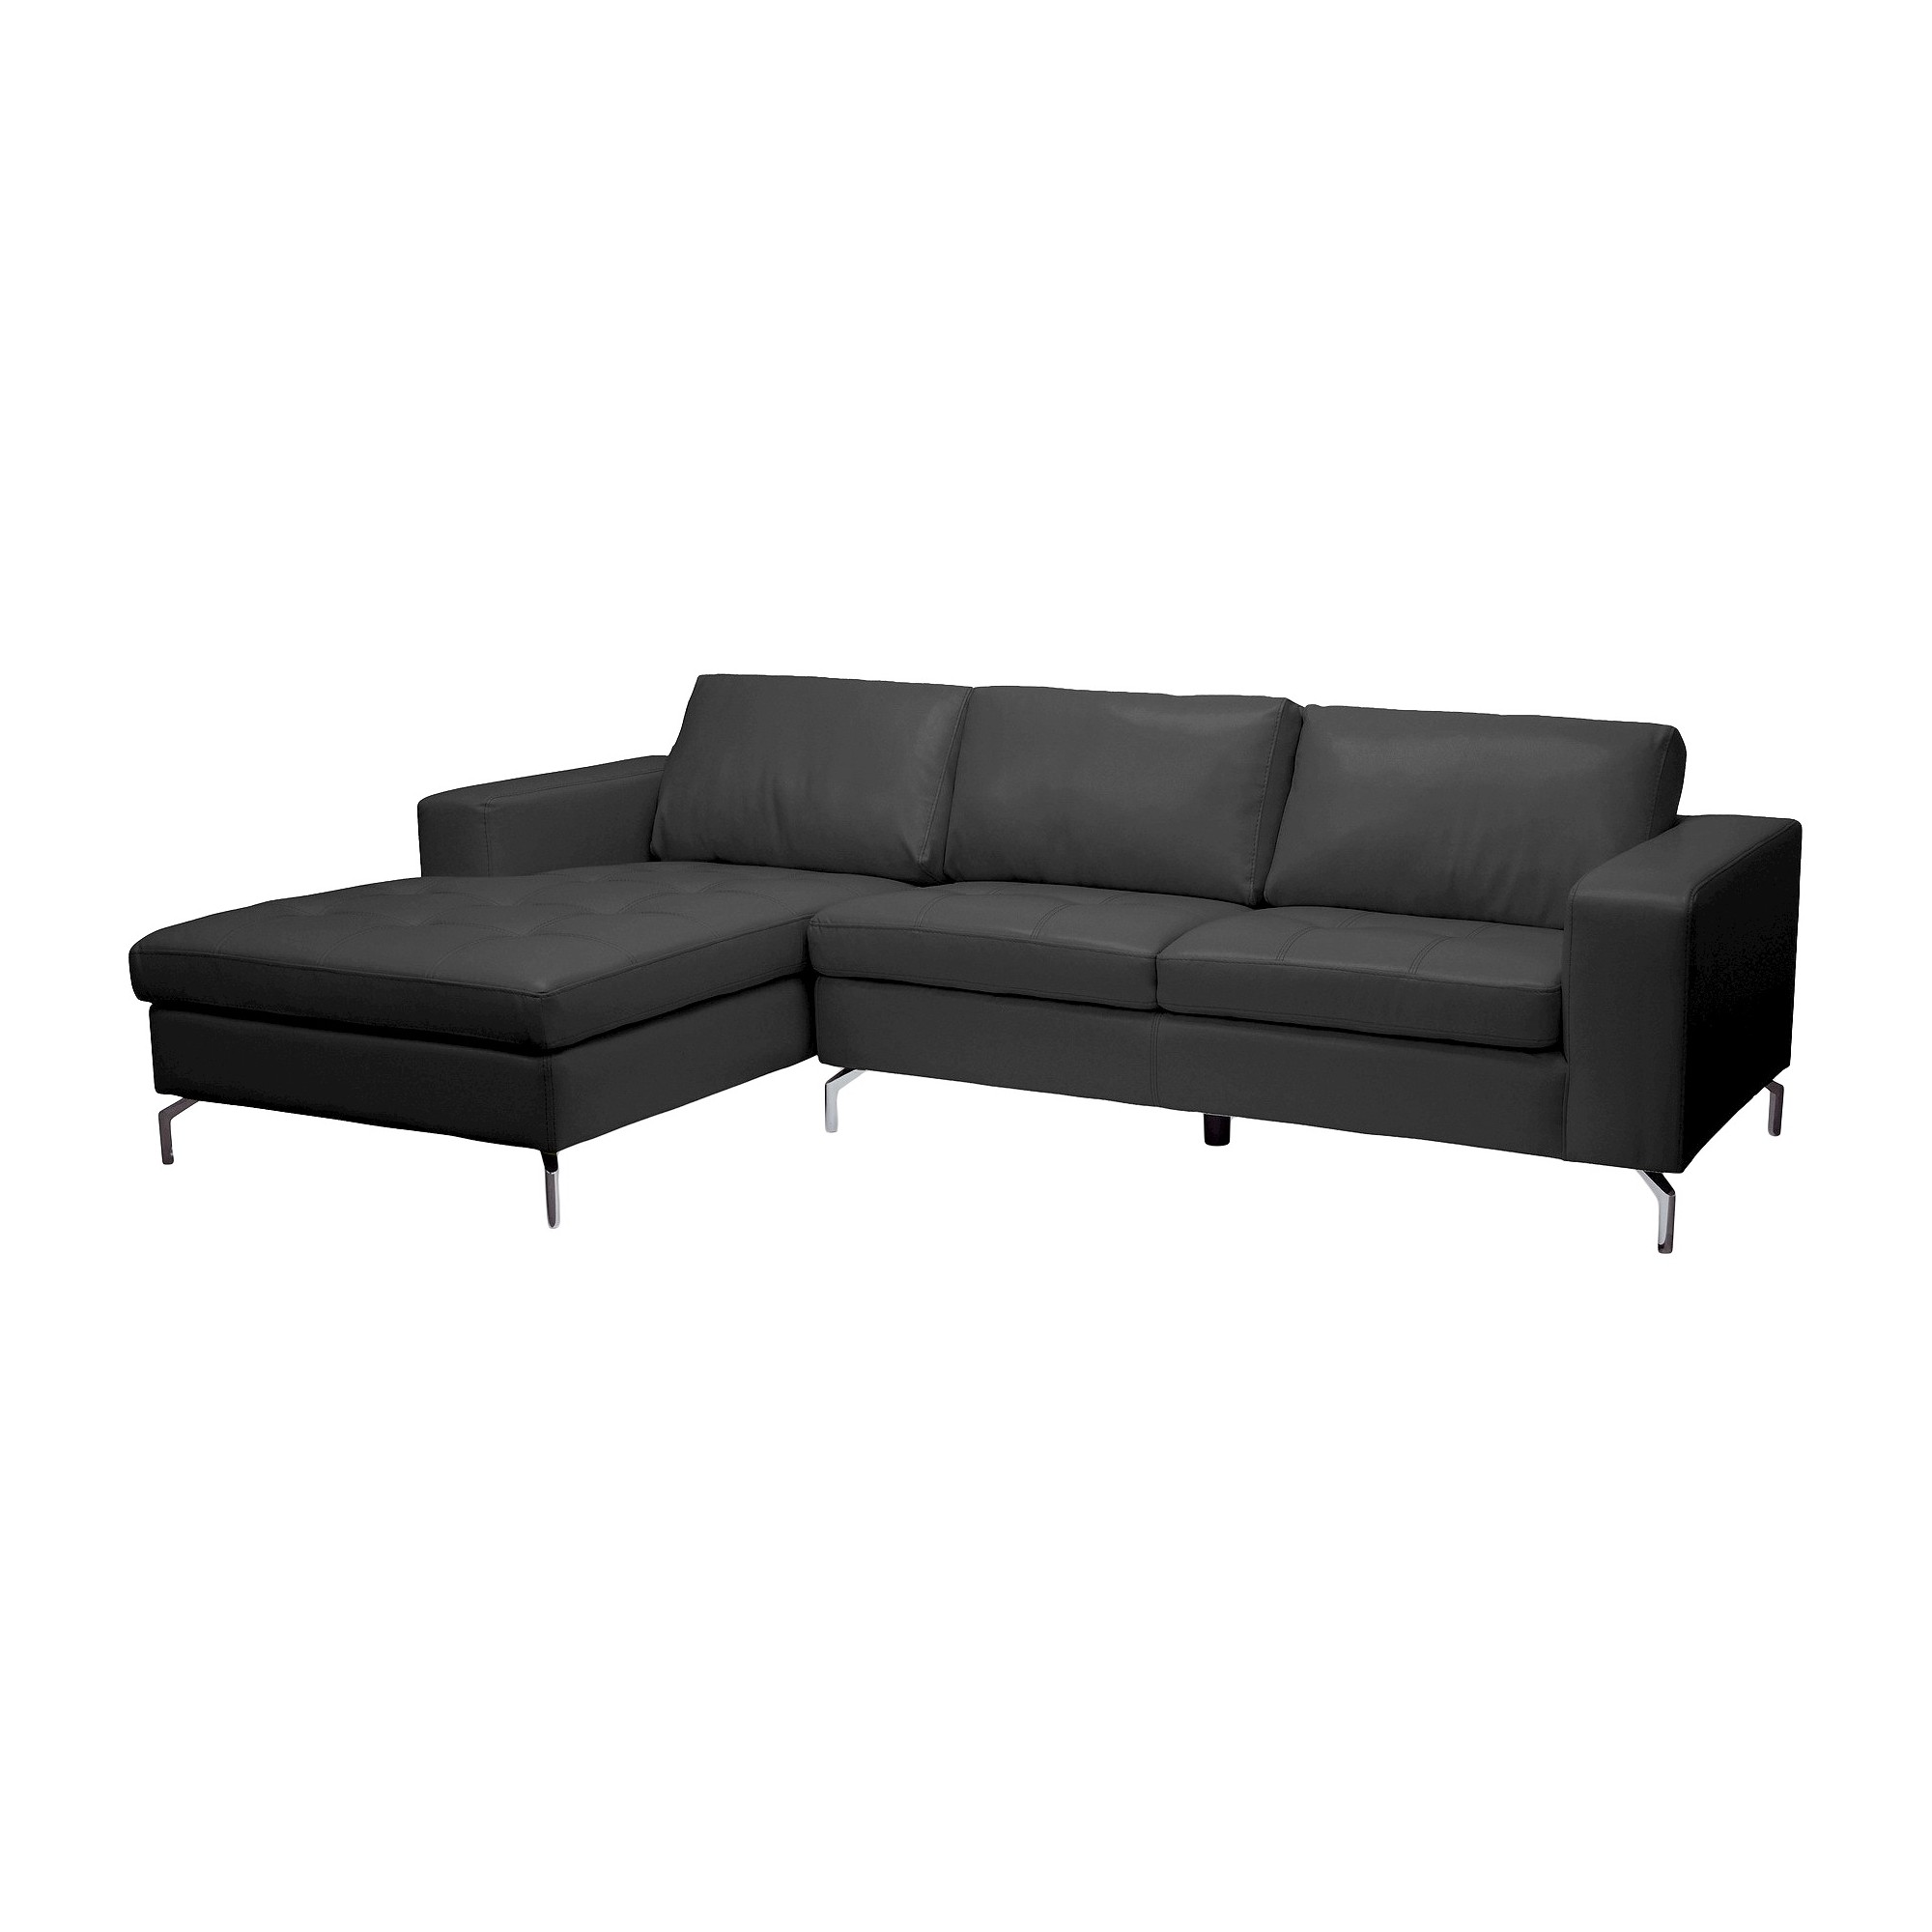 73 X 43 X 34 Inch Sectional